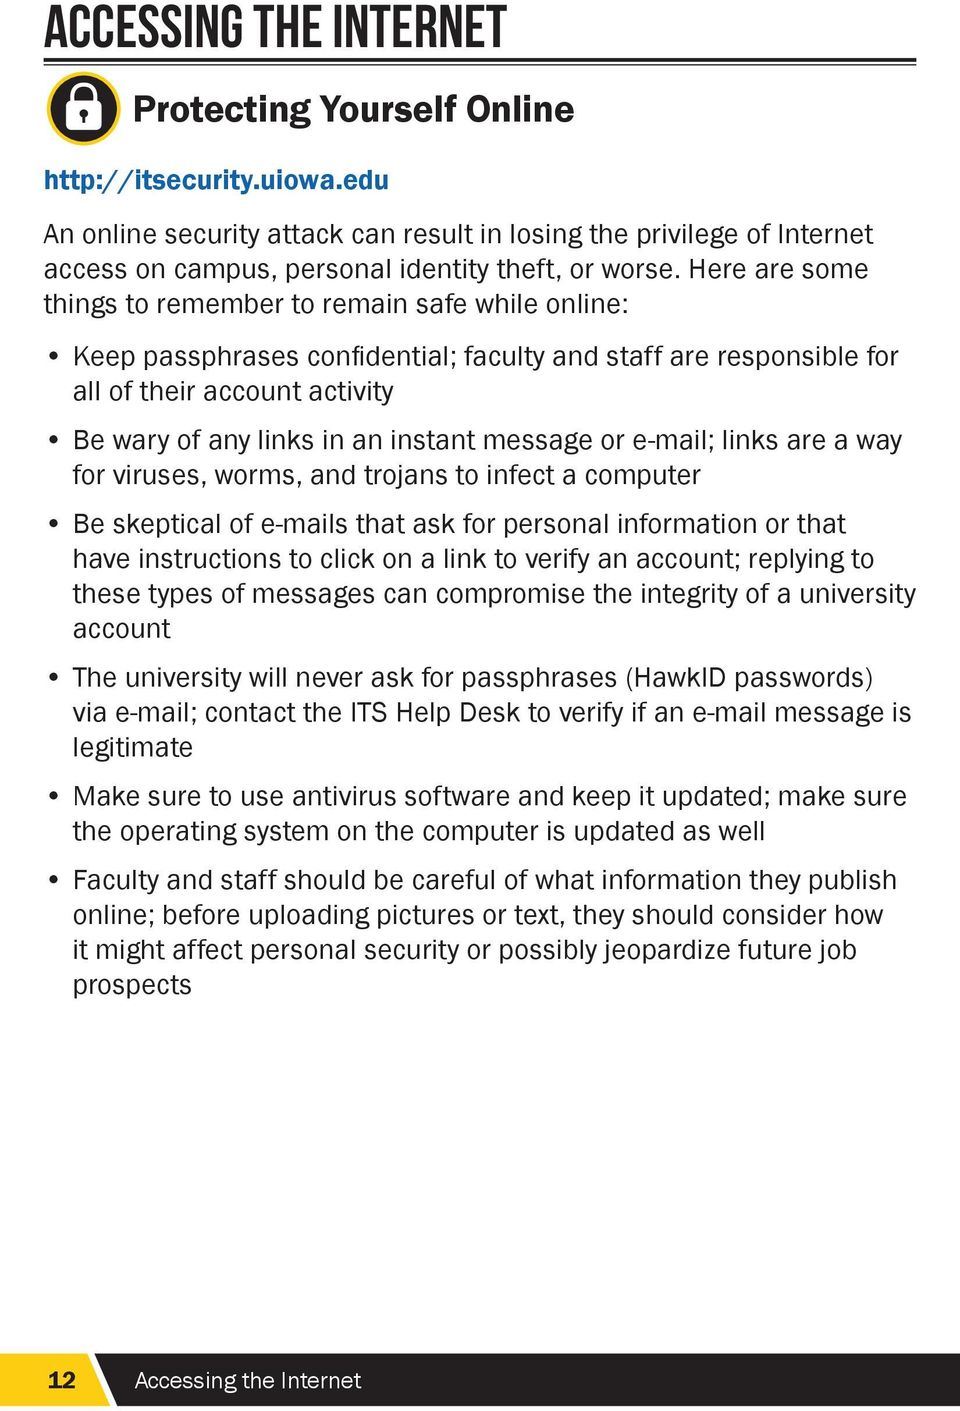 Here are some things to remember to remain safe while online: Keep passphrases confidential; faculty and staff are responsible for all of their account activity Be wary of any links in an instant